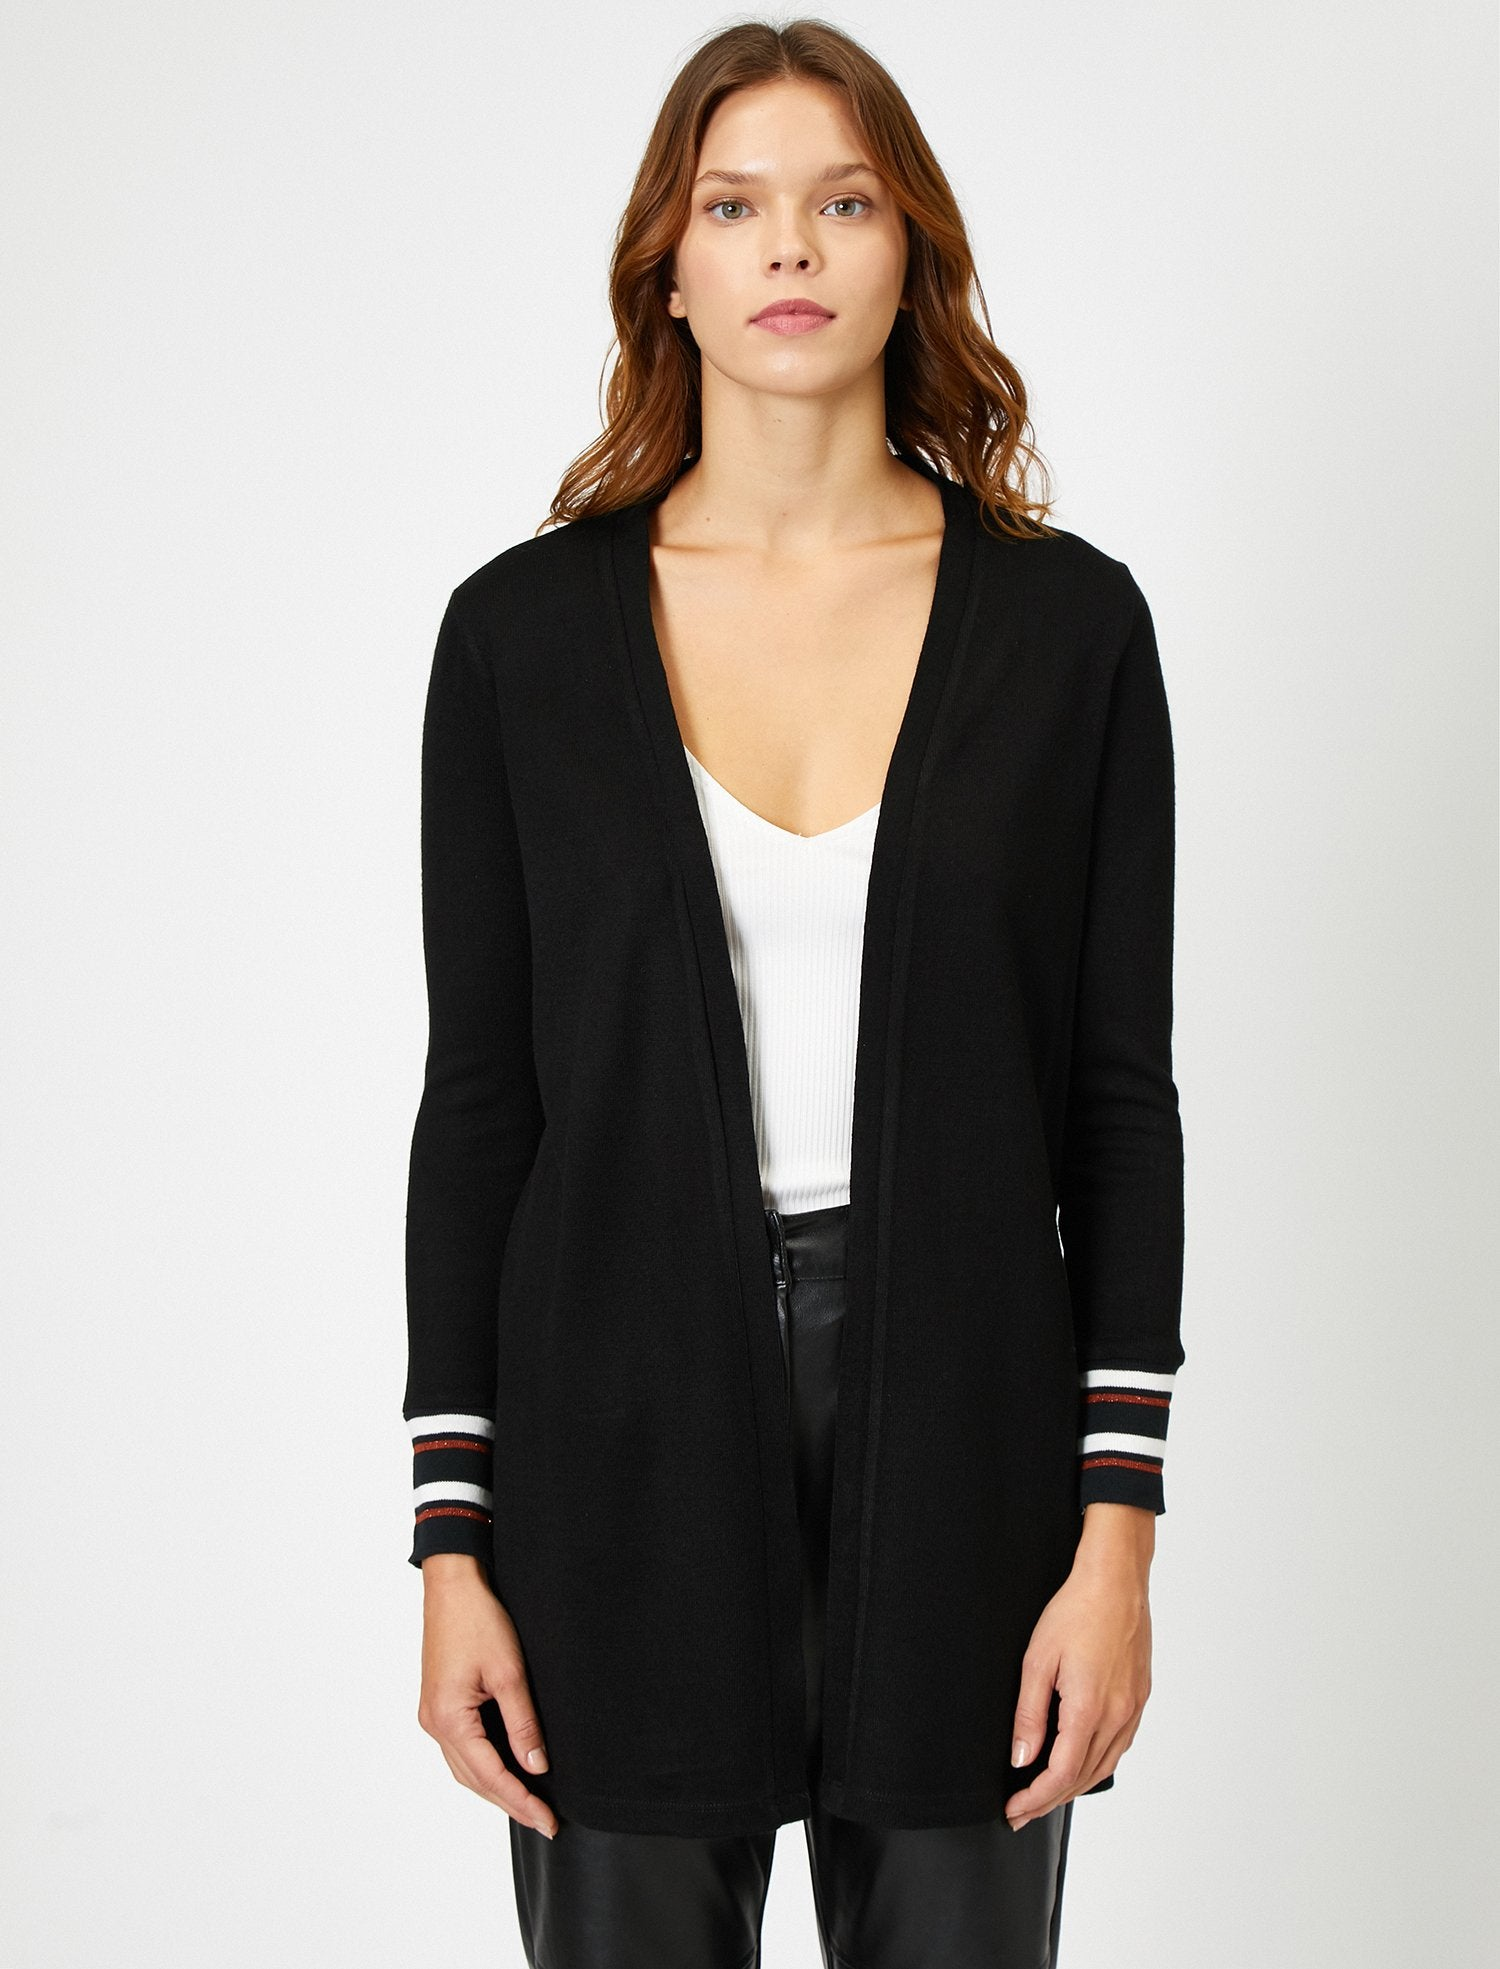 Cuffed Striped Cardigan in Black